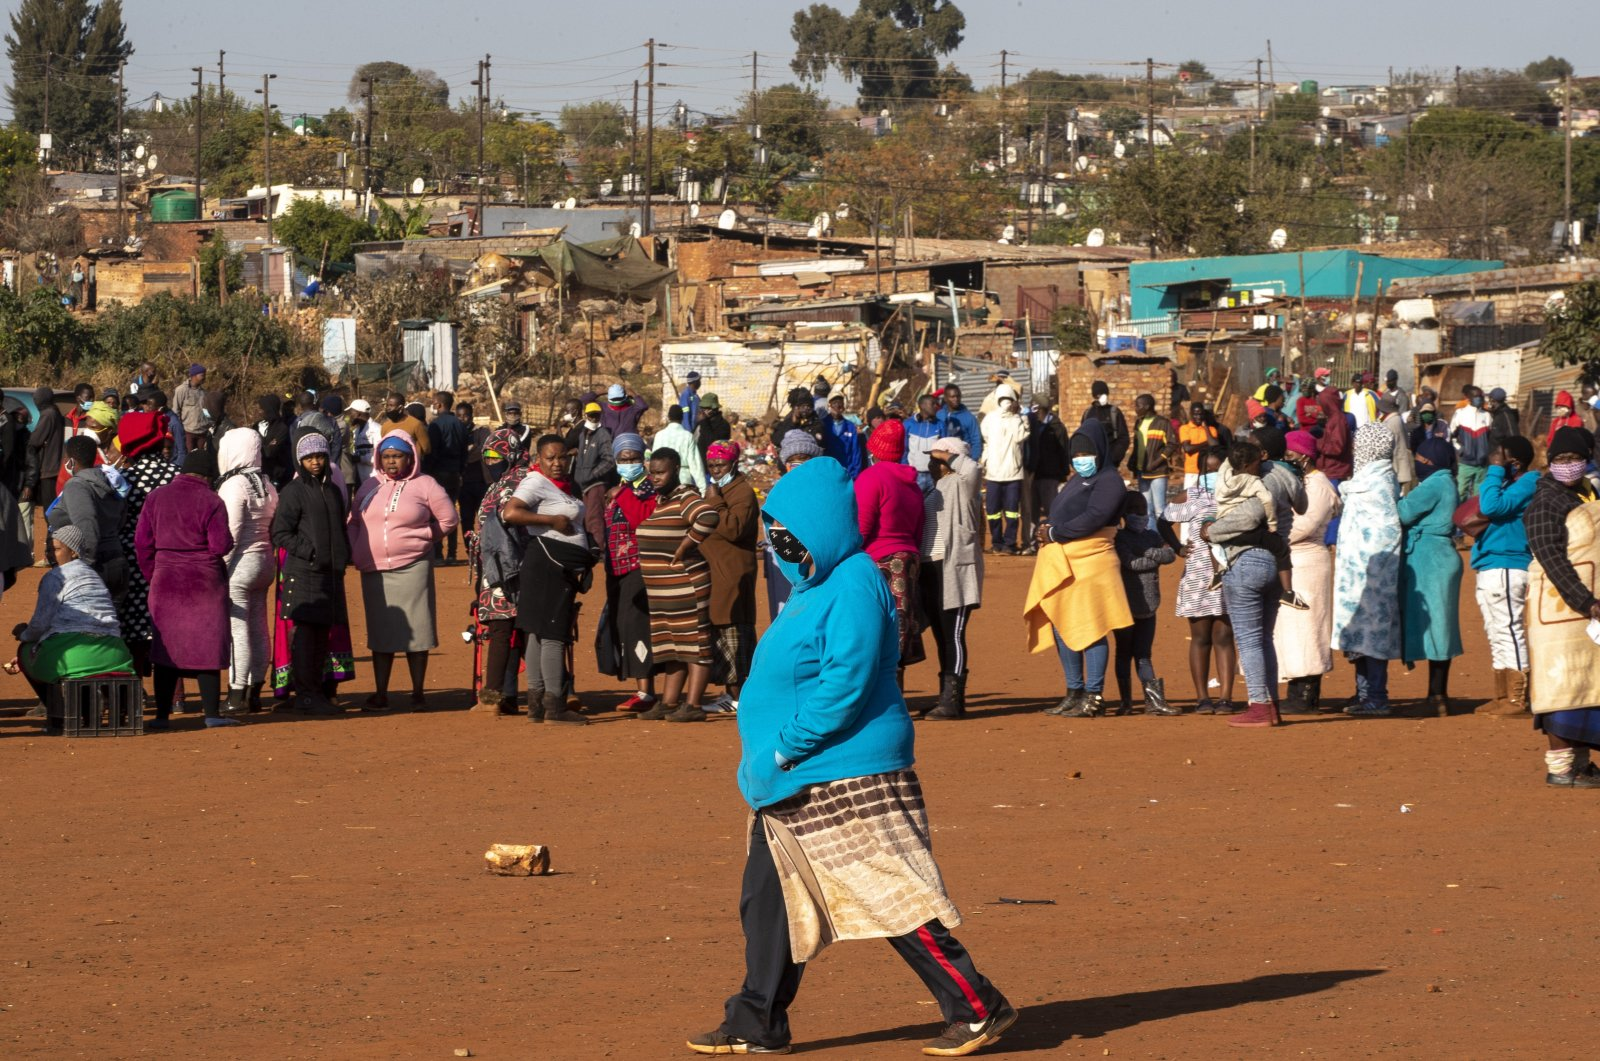 A woman walks across a dusty soccer field as people affected by the coronavirus economic downturn line up to receive food donations at the Iterileng informal settlement near Laudium, southwest of Pretoria, South Africa, May 20, 2020. (AP Photo)